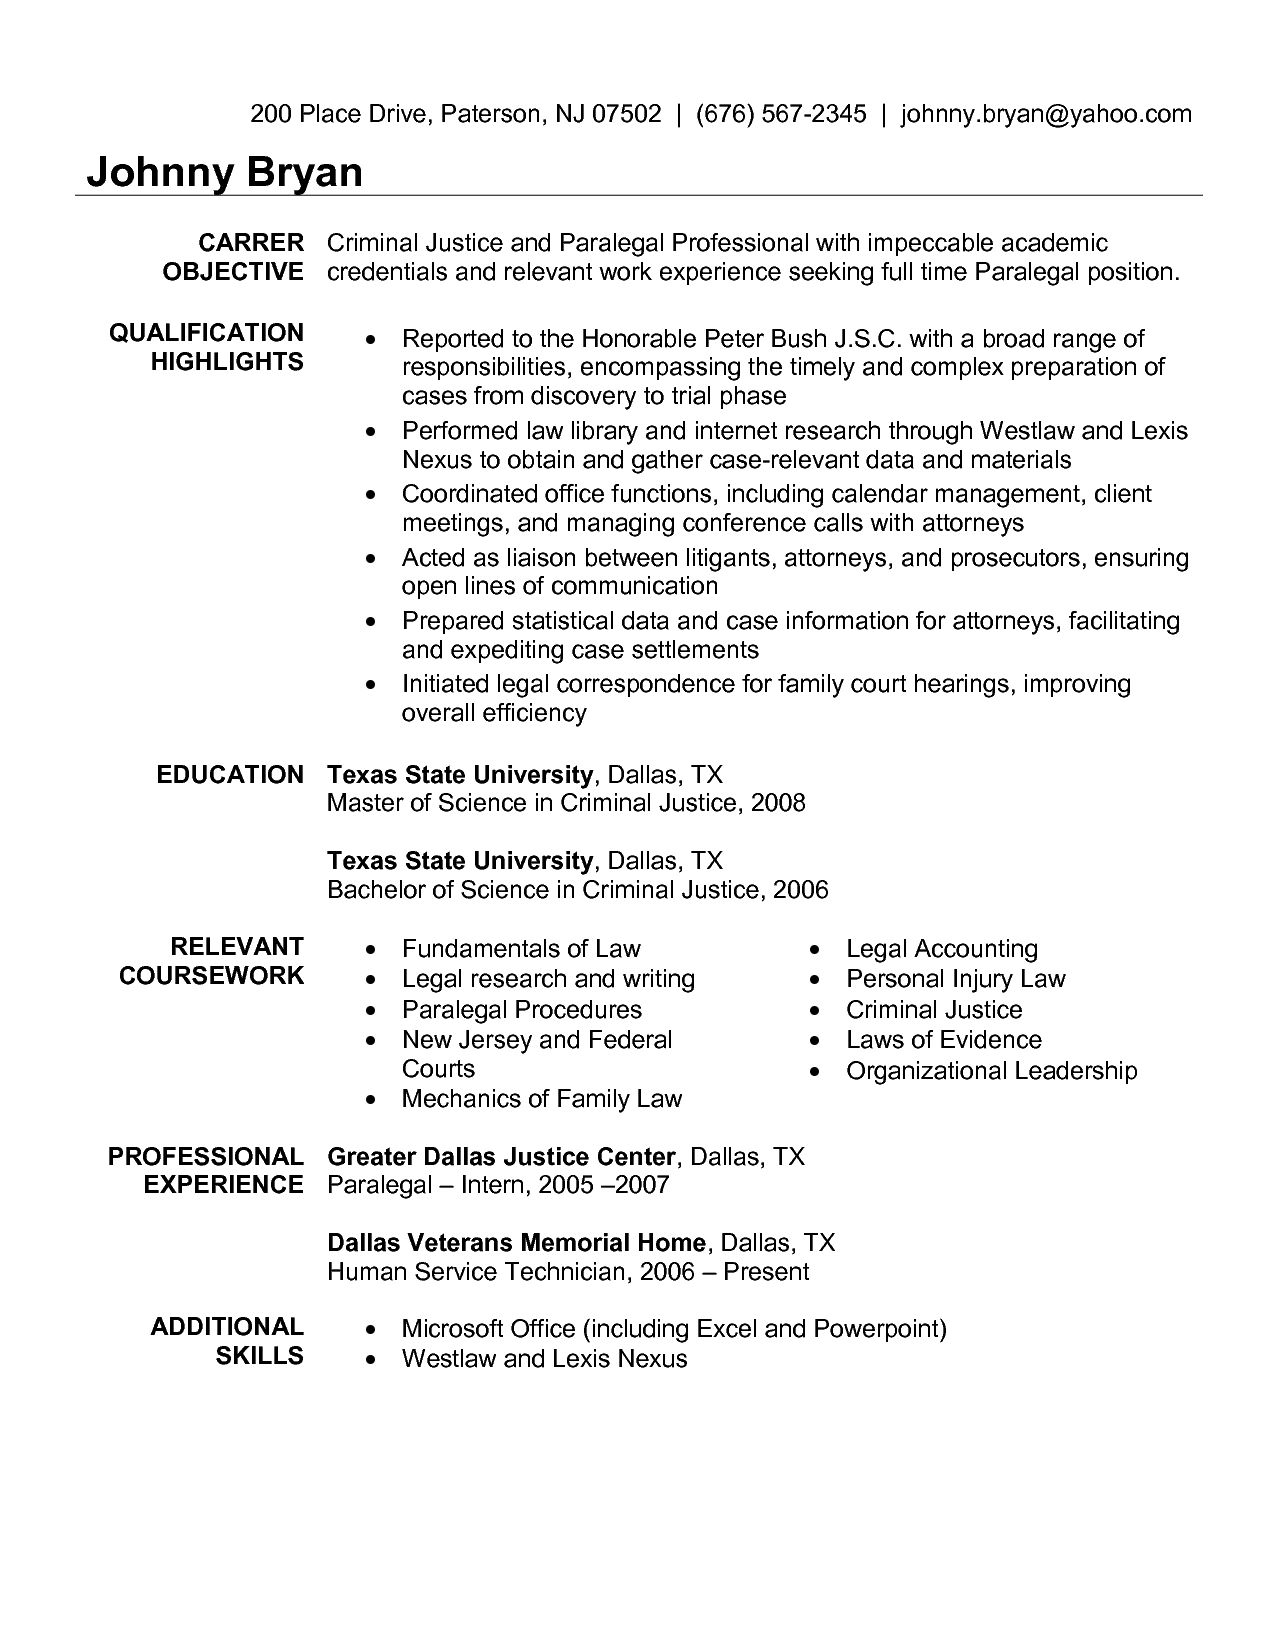 Resume Mission Statement Examples Objective Resume Criminal Justice  Httpwwwresumecareer